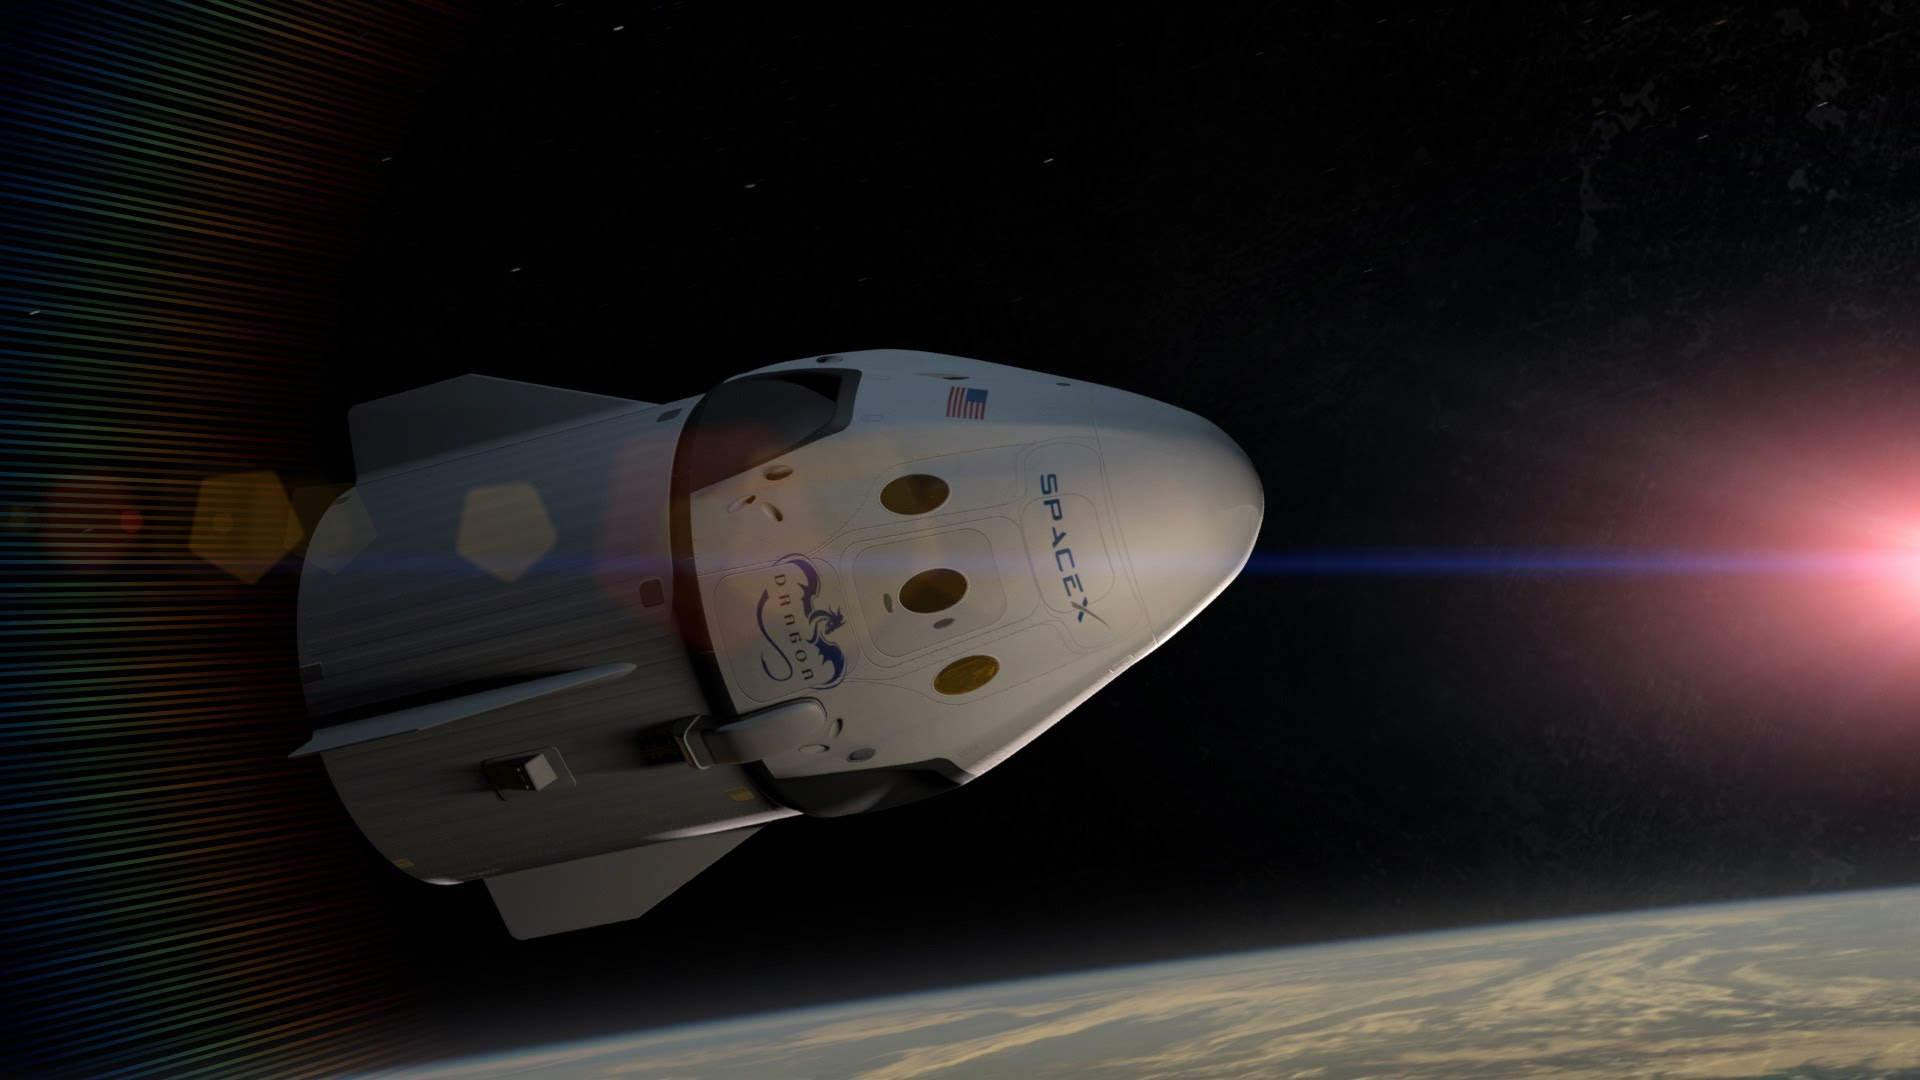 fastest spacecraft record may be broken in 2018 by nasas - HD1920×1080